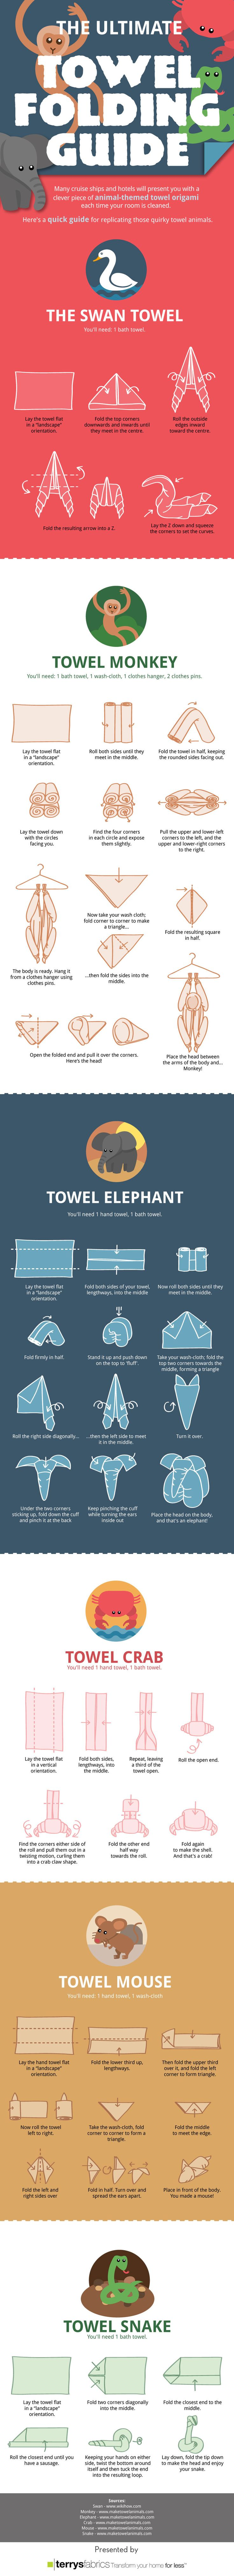 The Ultimate Towel Folding Guide Infographic